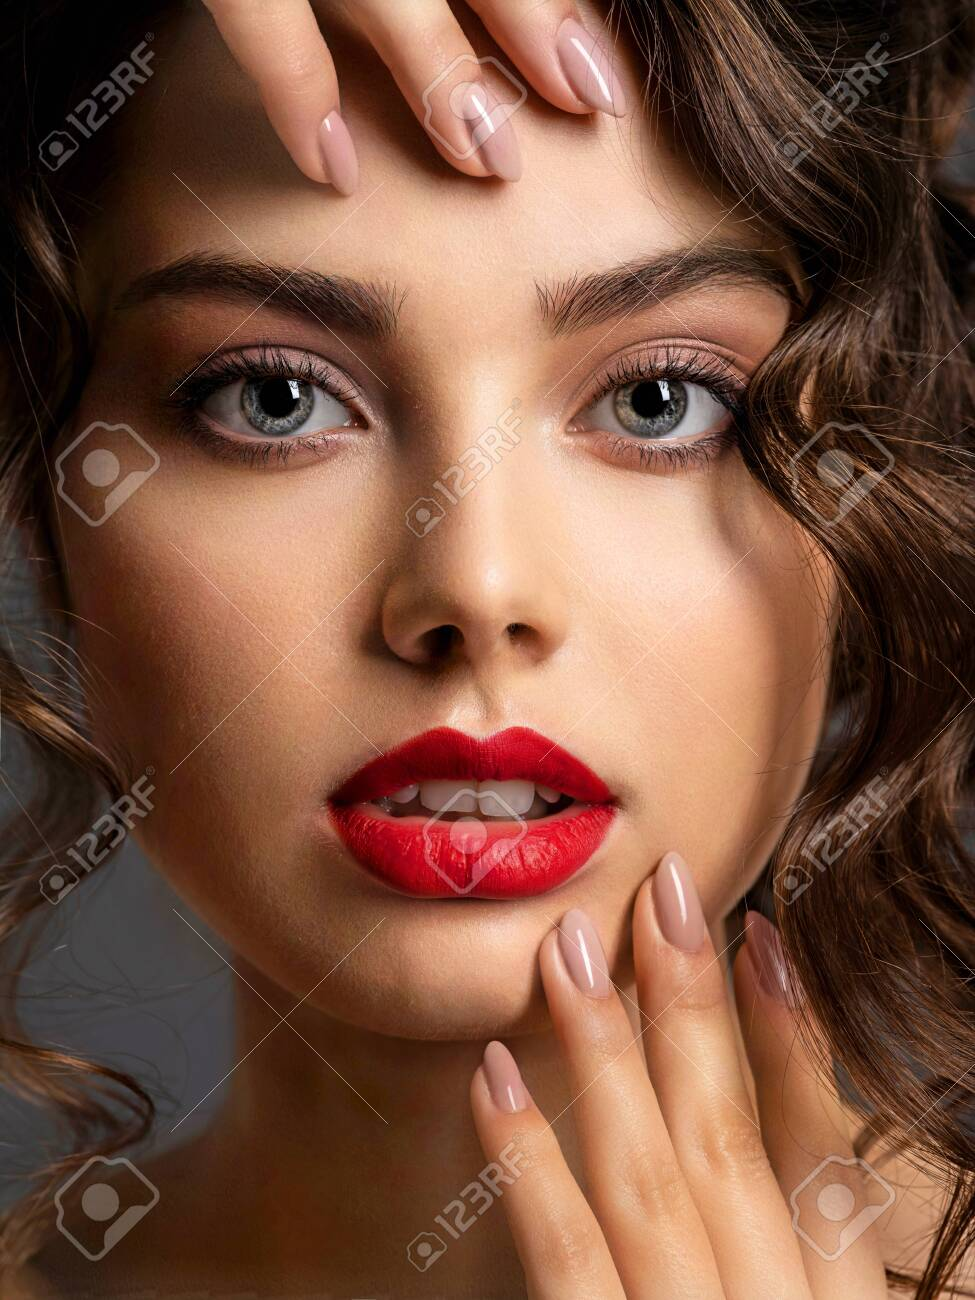 Closeup Face of a beautiful woman with a smoky eye makeup and red lipstick. Sexy brunette girl with long curly hair. Portrait of an attractive female - at studio. Fashion model. Beautiful eyes. - 122585551